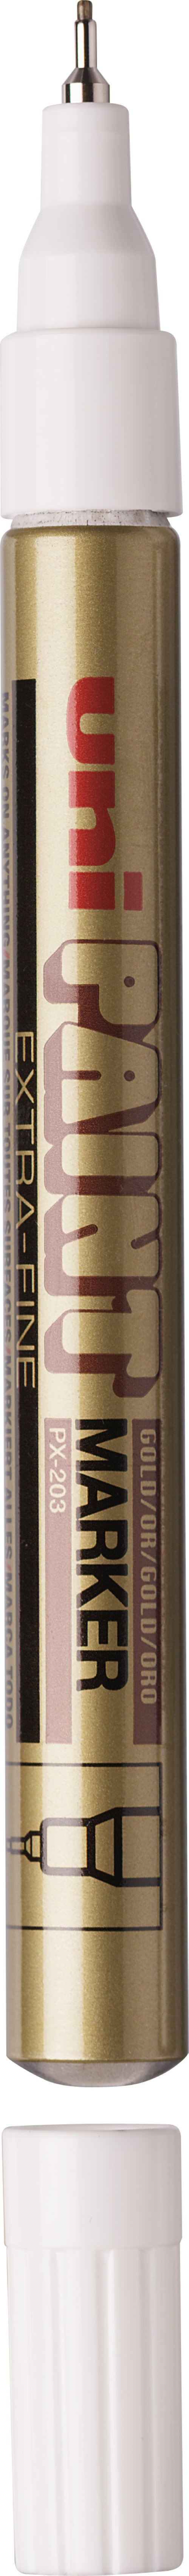 MARQUEUR UNI PAINT MARKER OR POINTE EXTRA-FINE